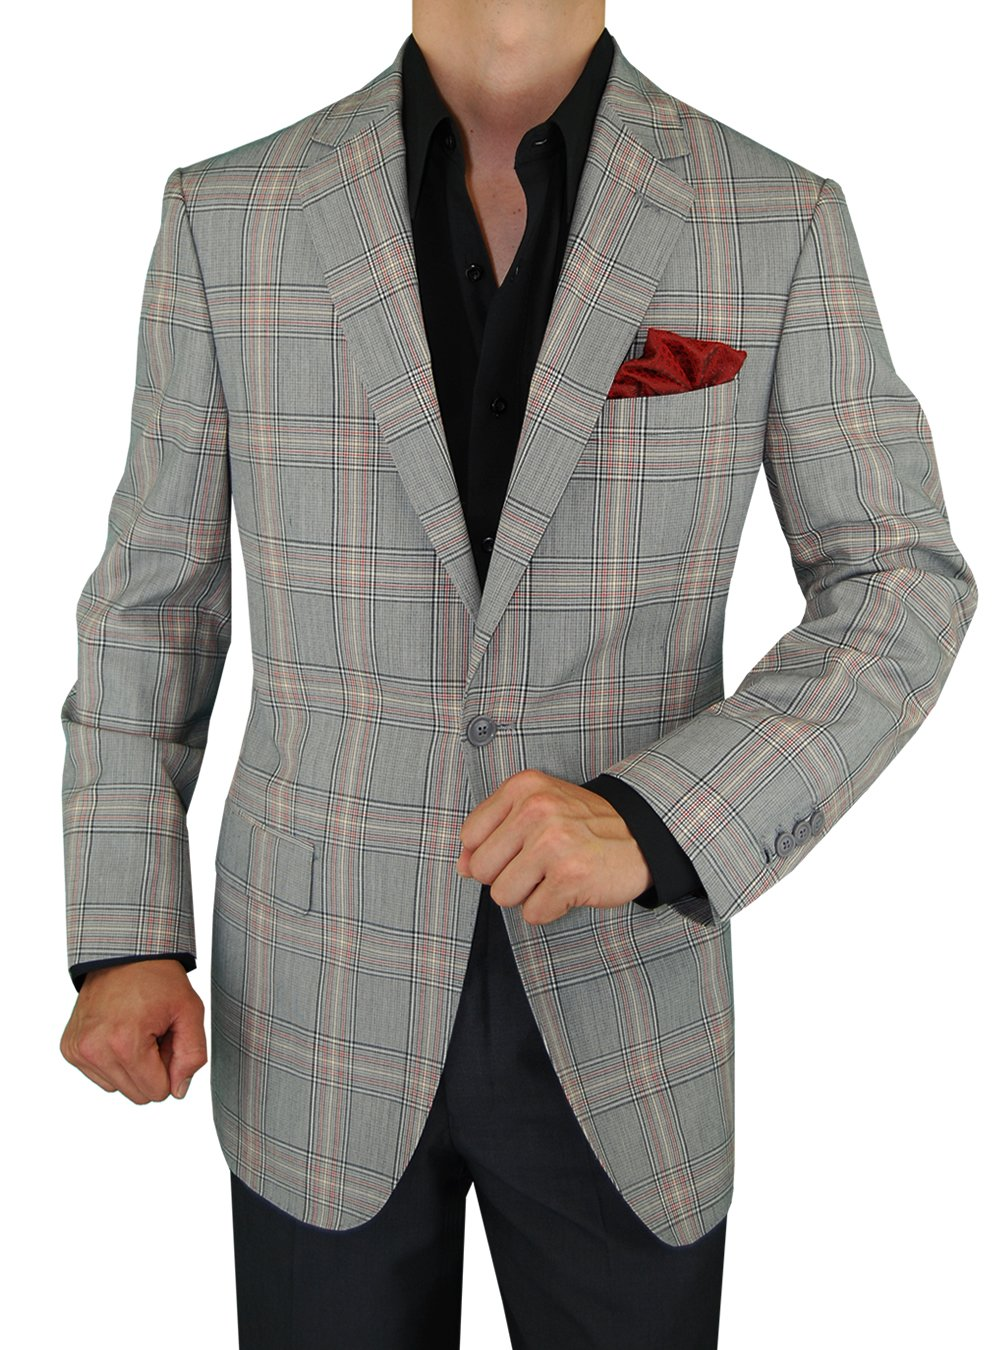 Gino Valentino 1 Button Jacket Windowpane Gray Blazer (42 Regular, Gray)